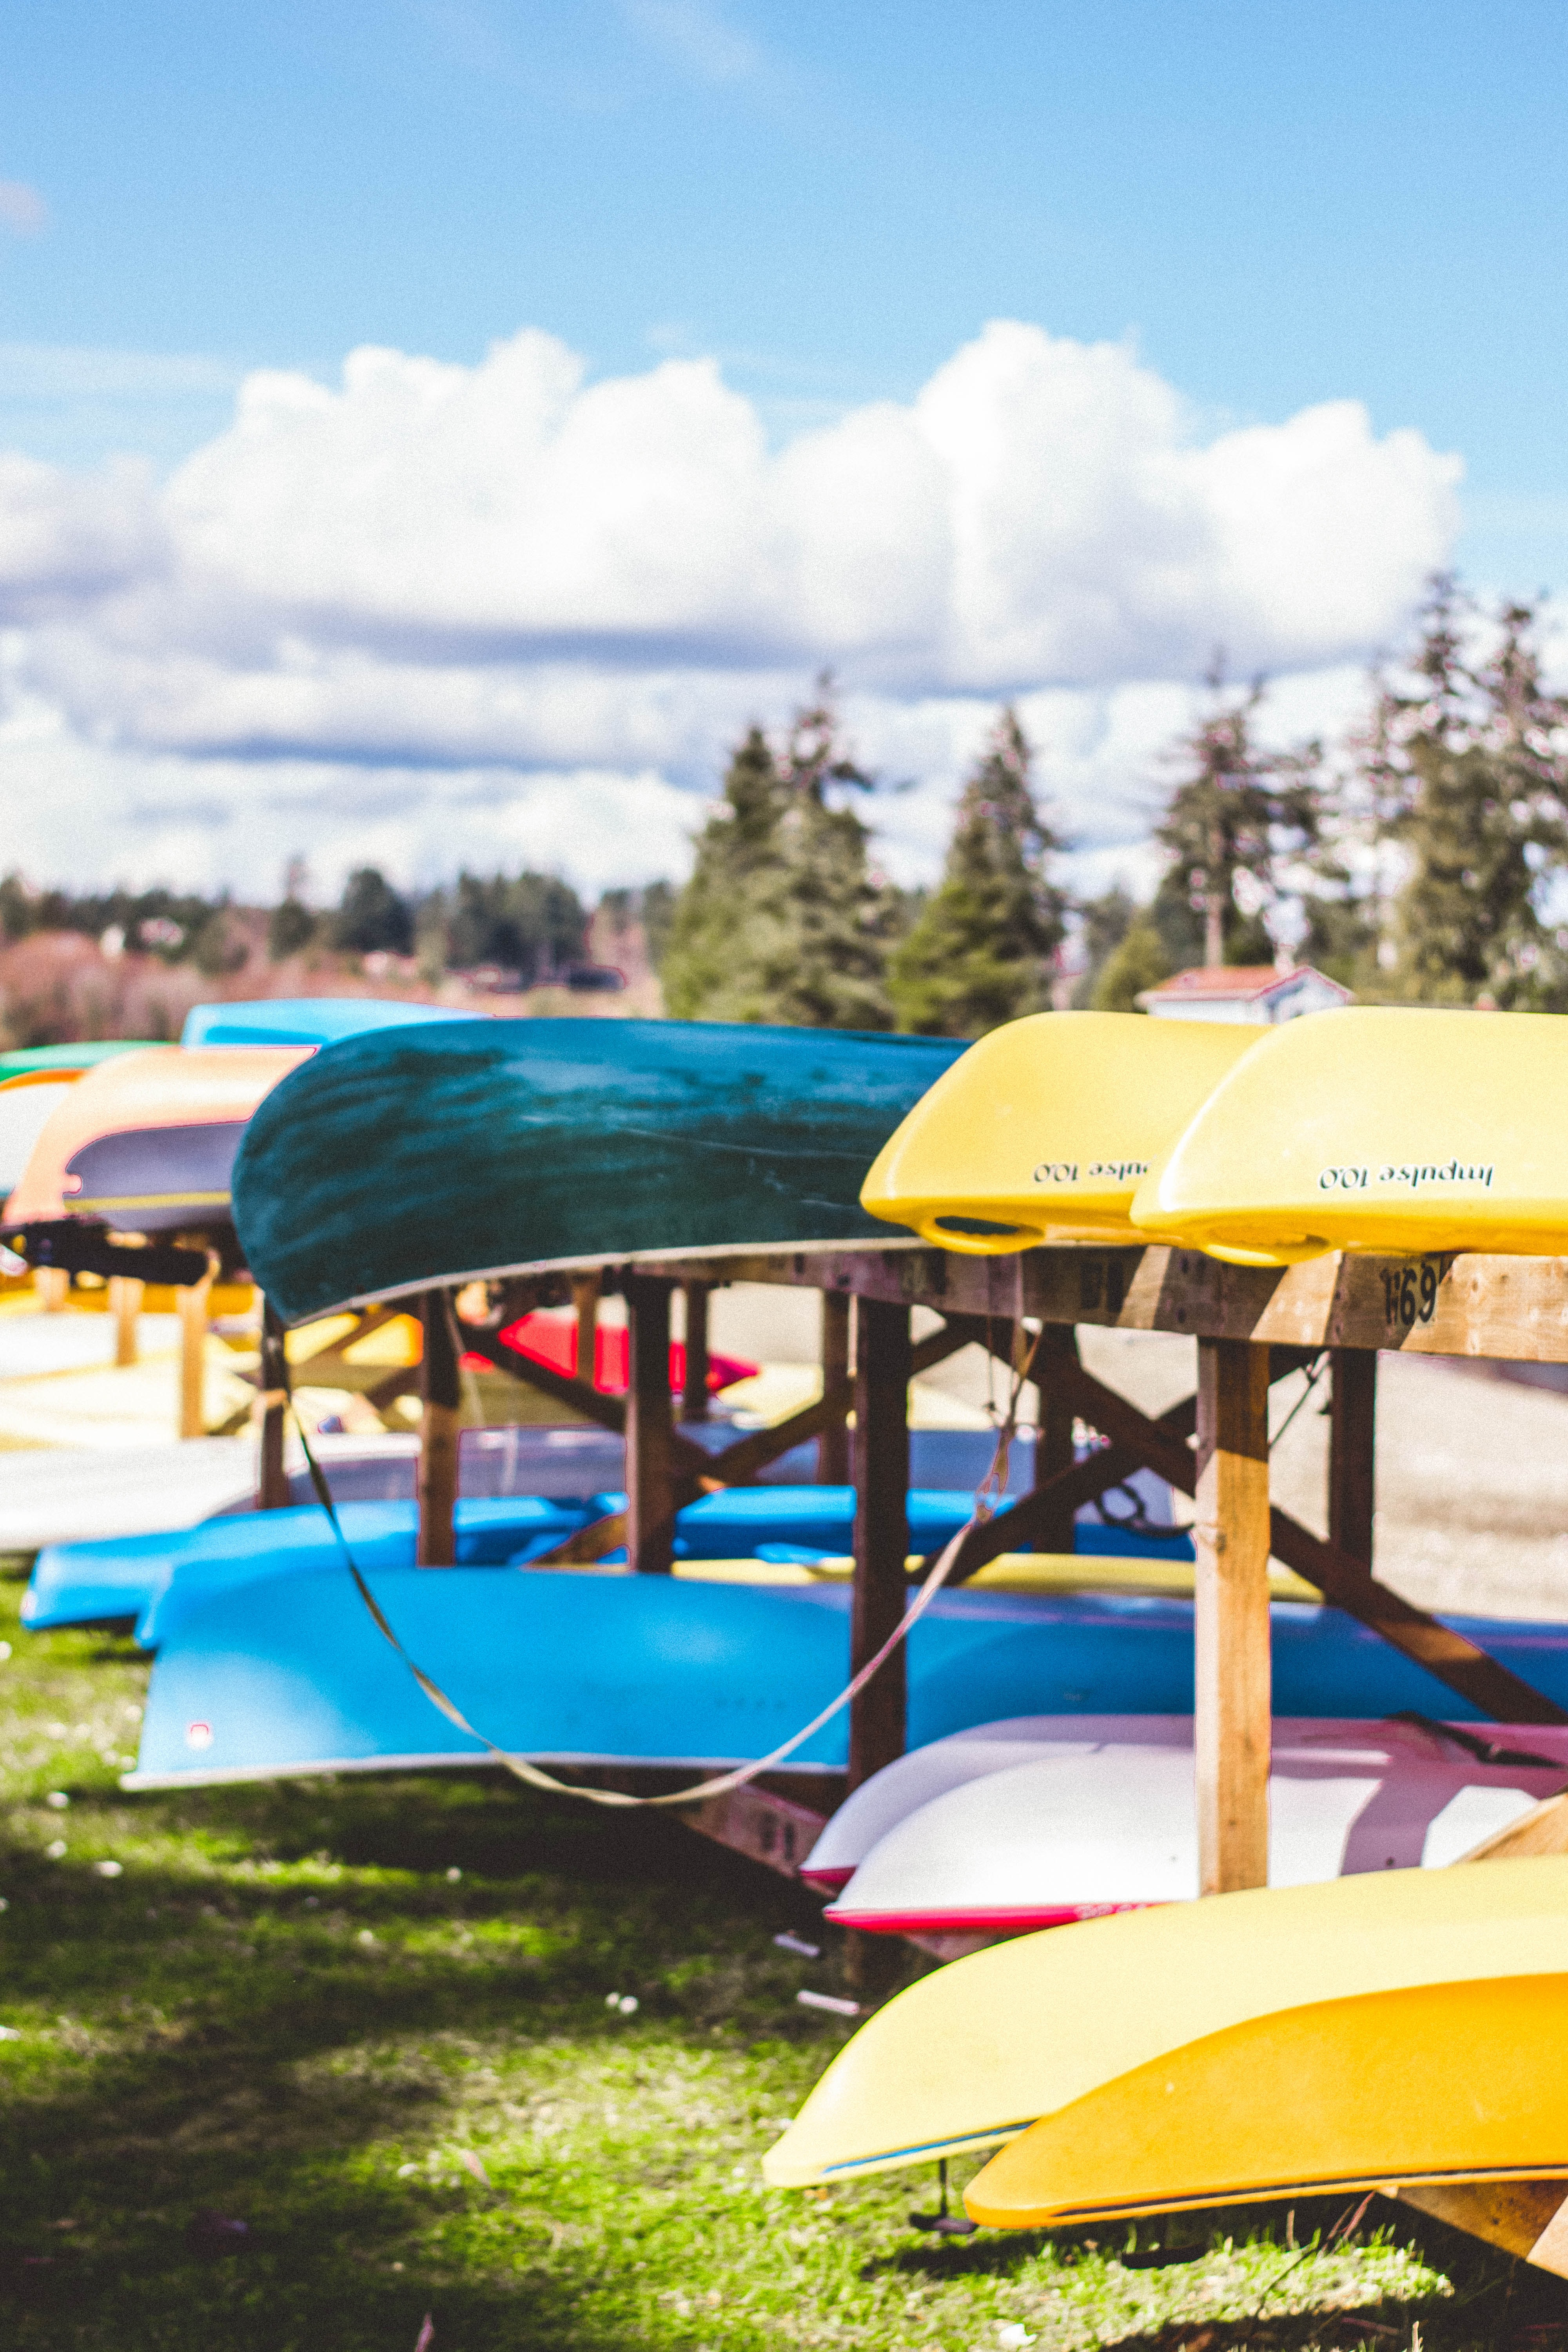 assorted-color canoe on rack